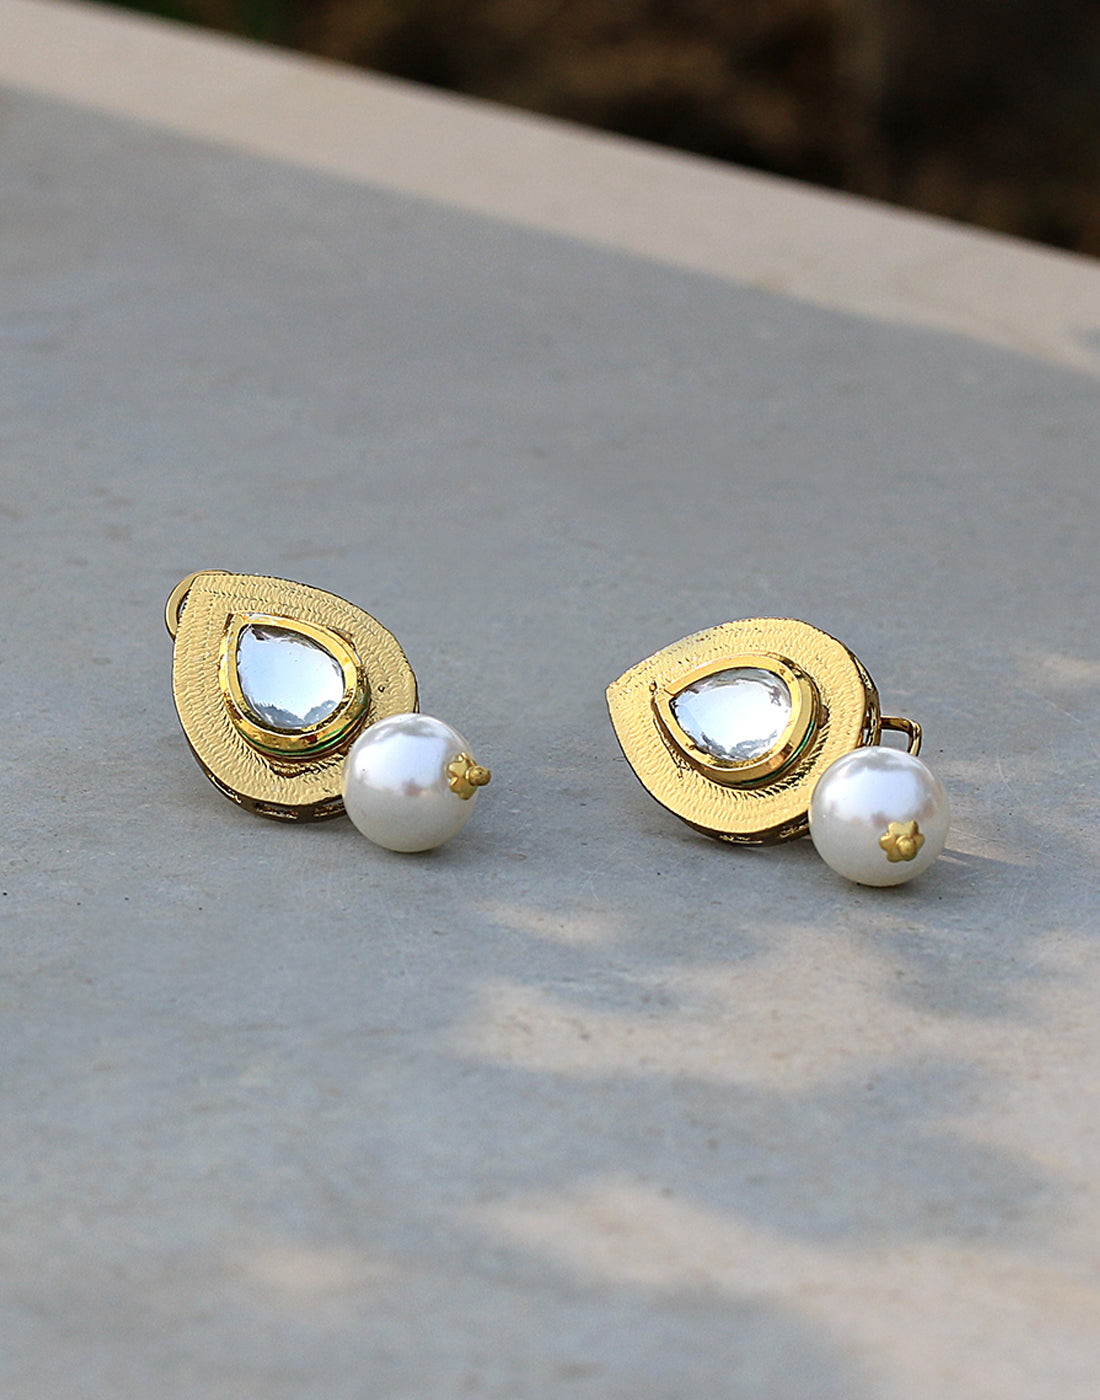 Golden-tone Statement Studs With Pearl Drop